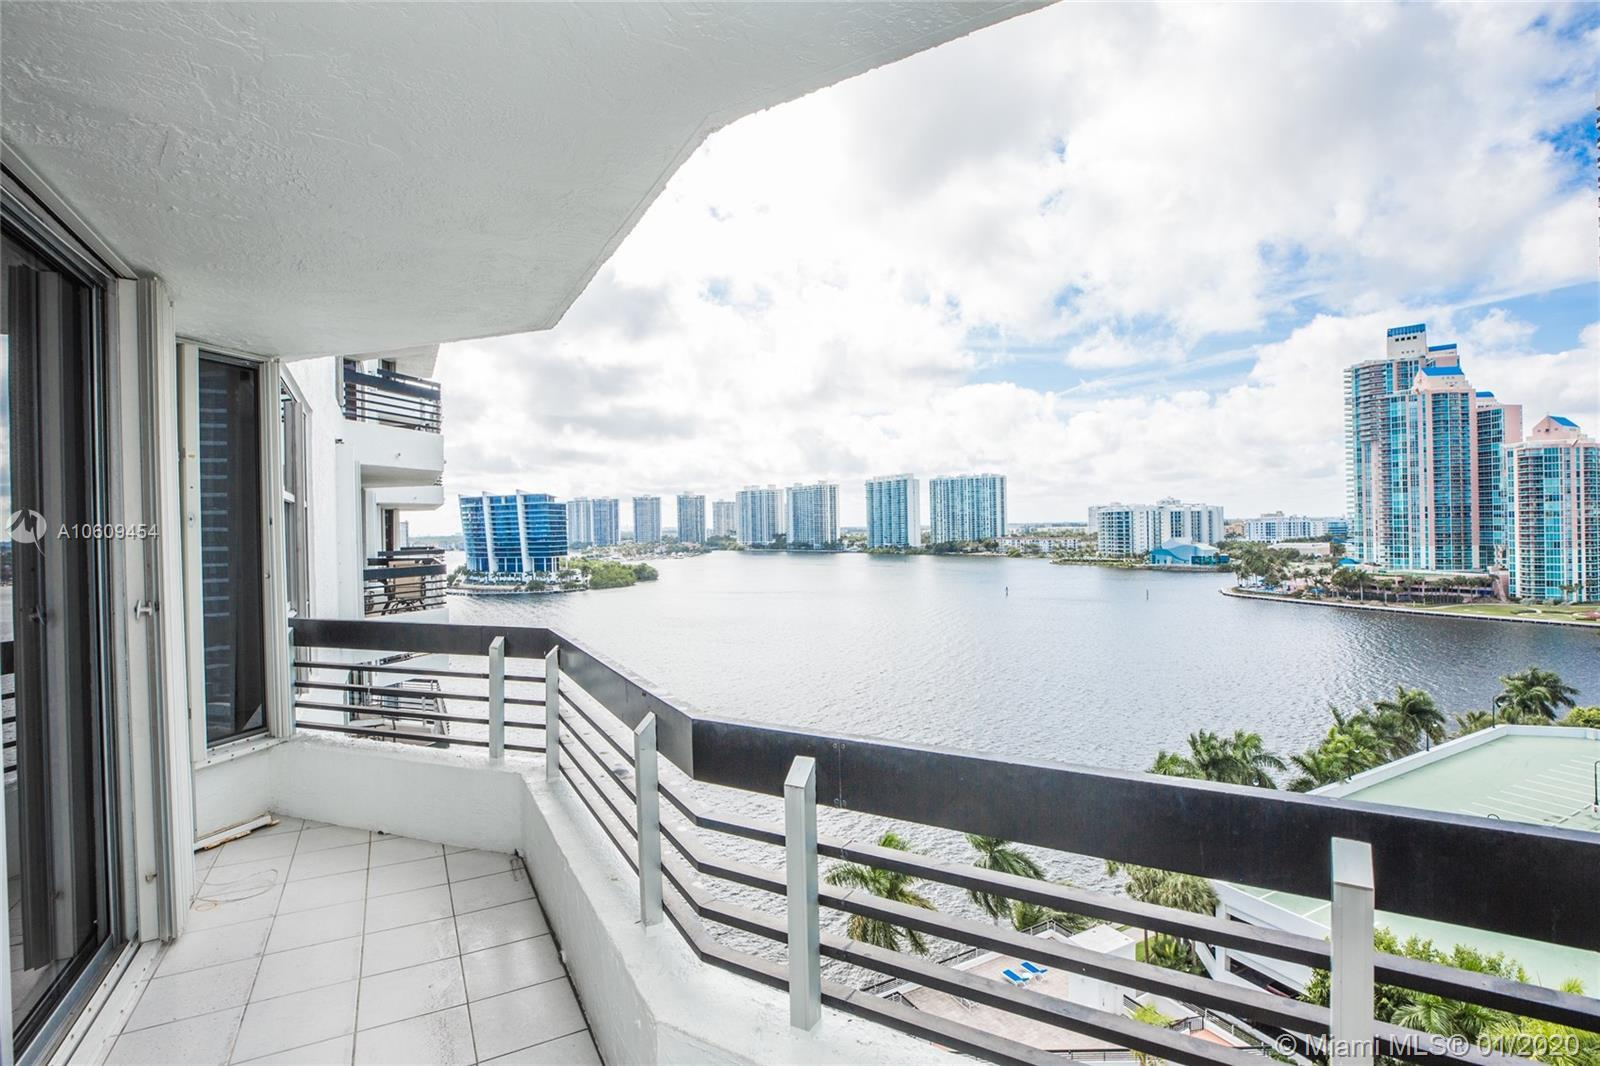 BEAUTIFUL 2/2 LOCATED IN MYSTIC POINTE TOWER 300. LOVELY VIEWS OF THE BAY & SKYLINE, UPDATED KITCHEN